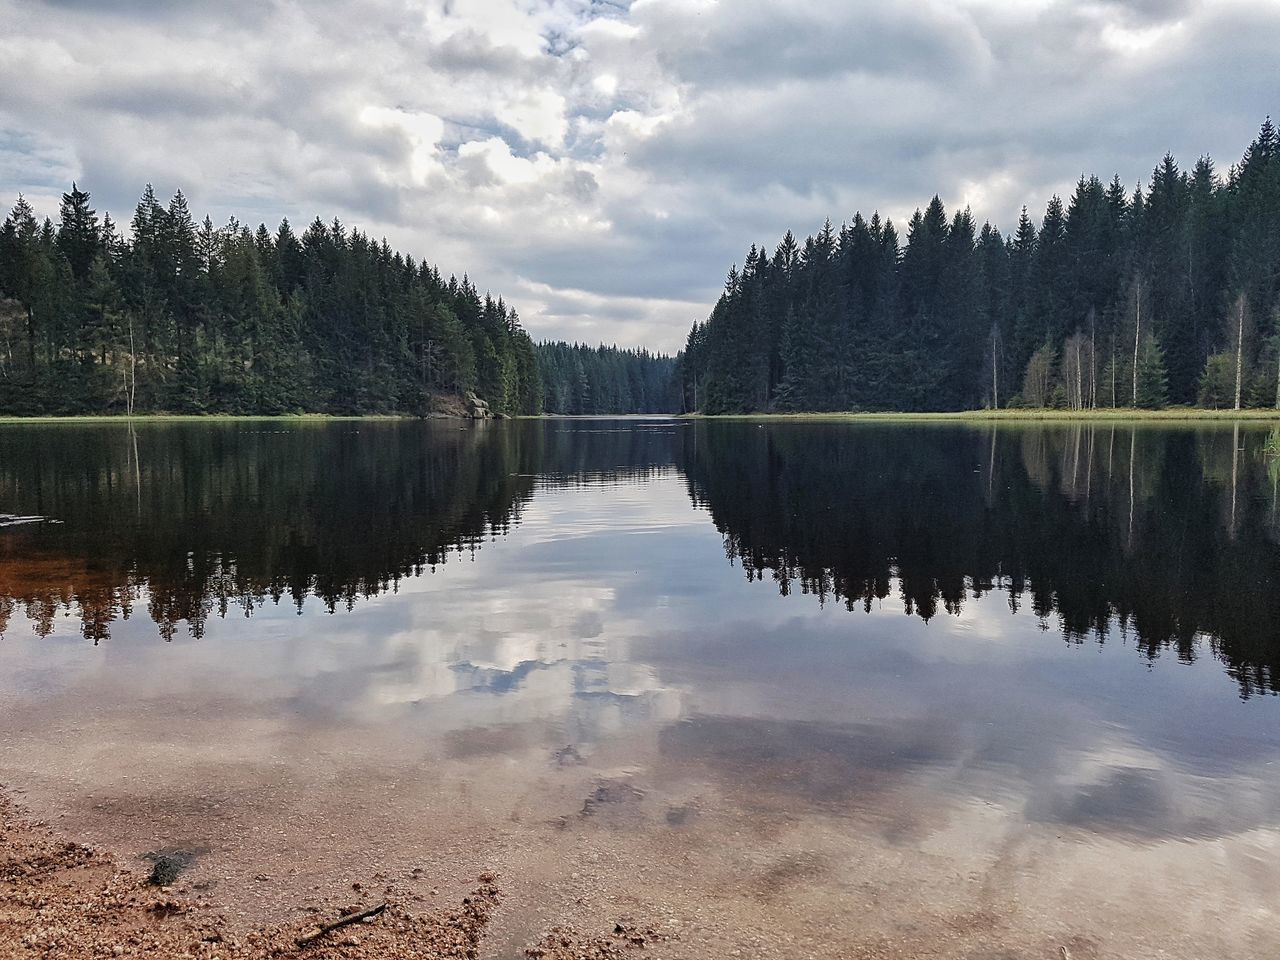 Beauty In Nature Outdoors Scenics Tranquility Sky Cloud - Sky Nature Lake Reflection Water Tree Symmetry The Secret Spaces Secret Places FAR AWAY Vogtland Spring In The Mountains Tranquil Scene At The Lake Vogtlandsee